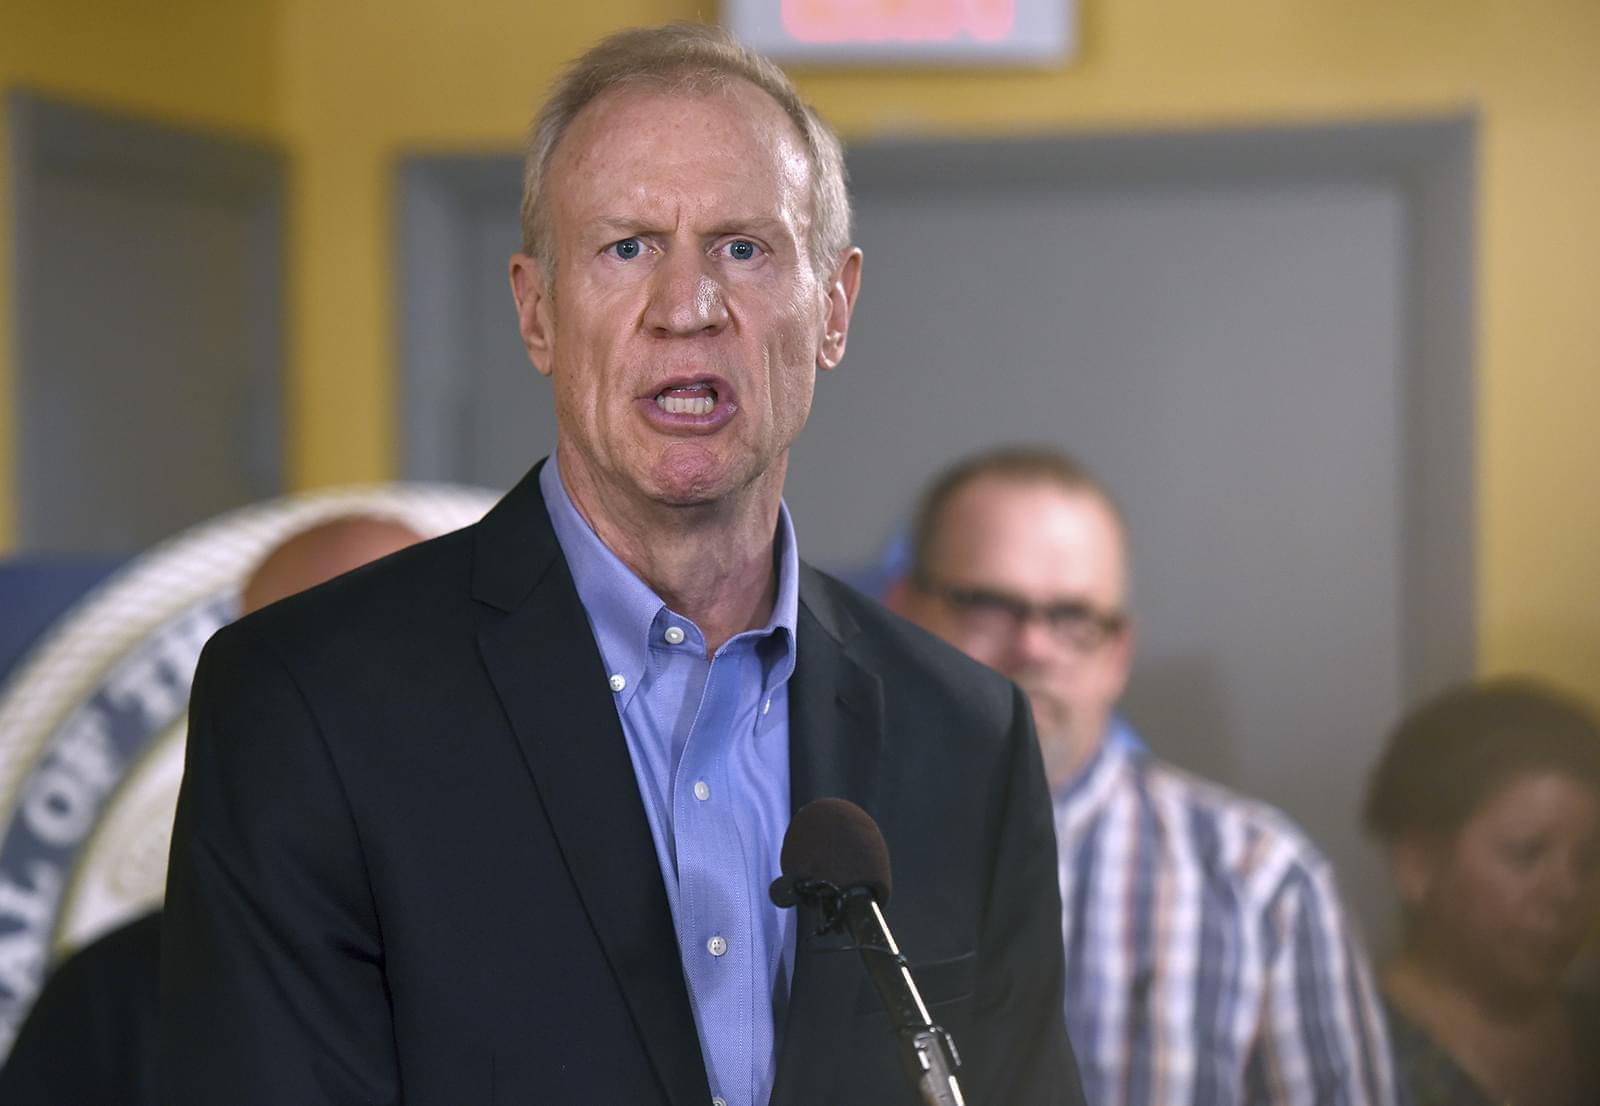 Illinois Gov. Bruce Rauner speaks during a news conference, Wednesday, July 5, 2017, in Chicago.